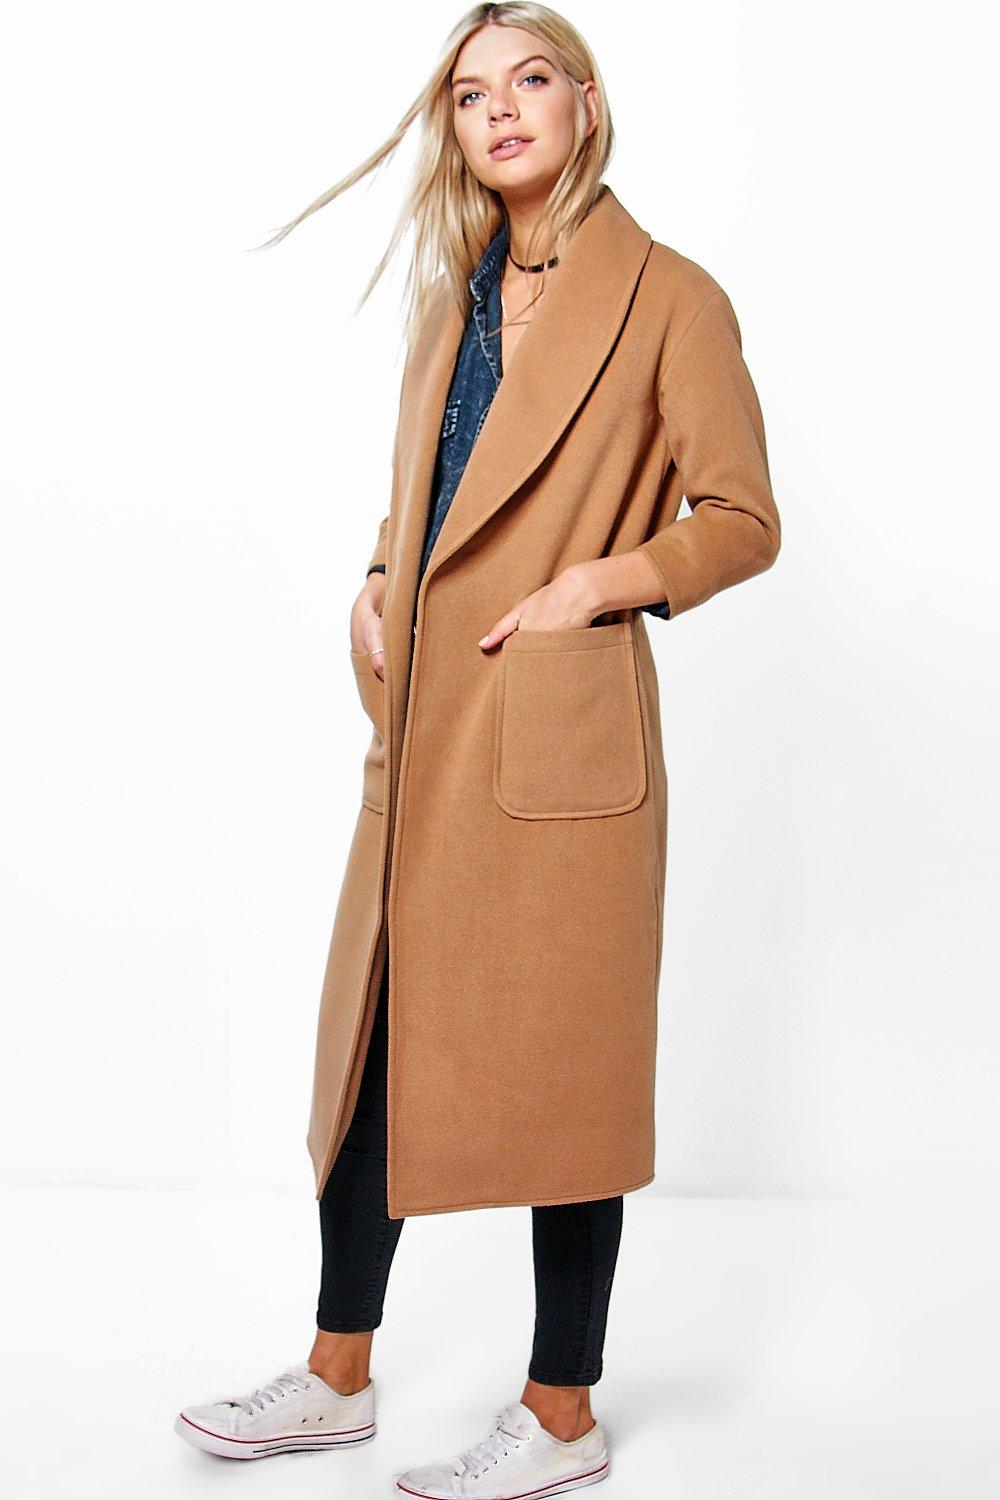 Emilia Shawl Collar Robe Duster Coat From Boohoo